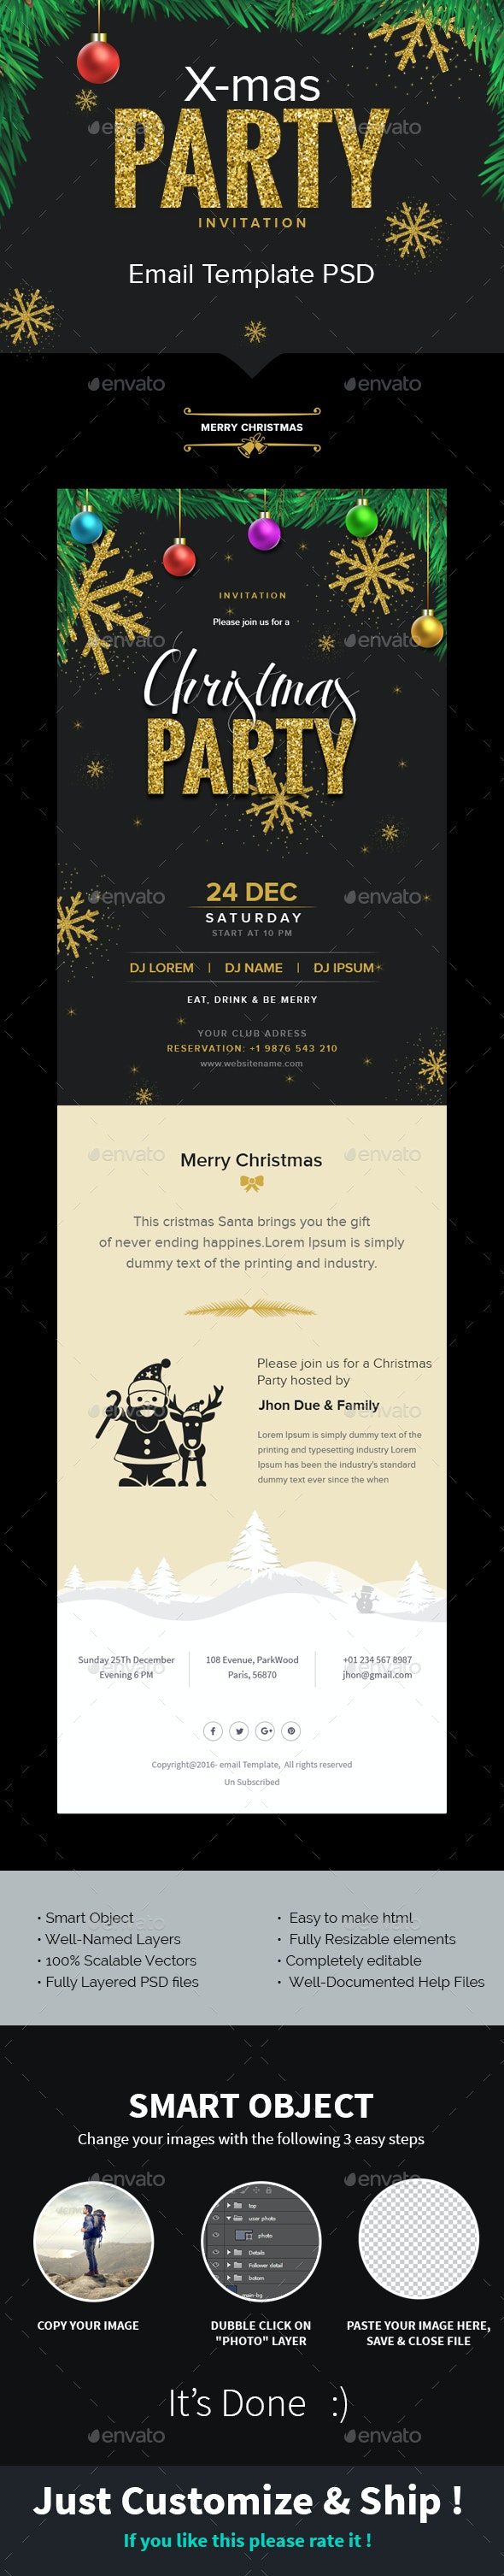 X-mas - Christmas Party Invitation Email Template PSD - E-newsletters Web Elements